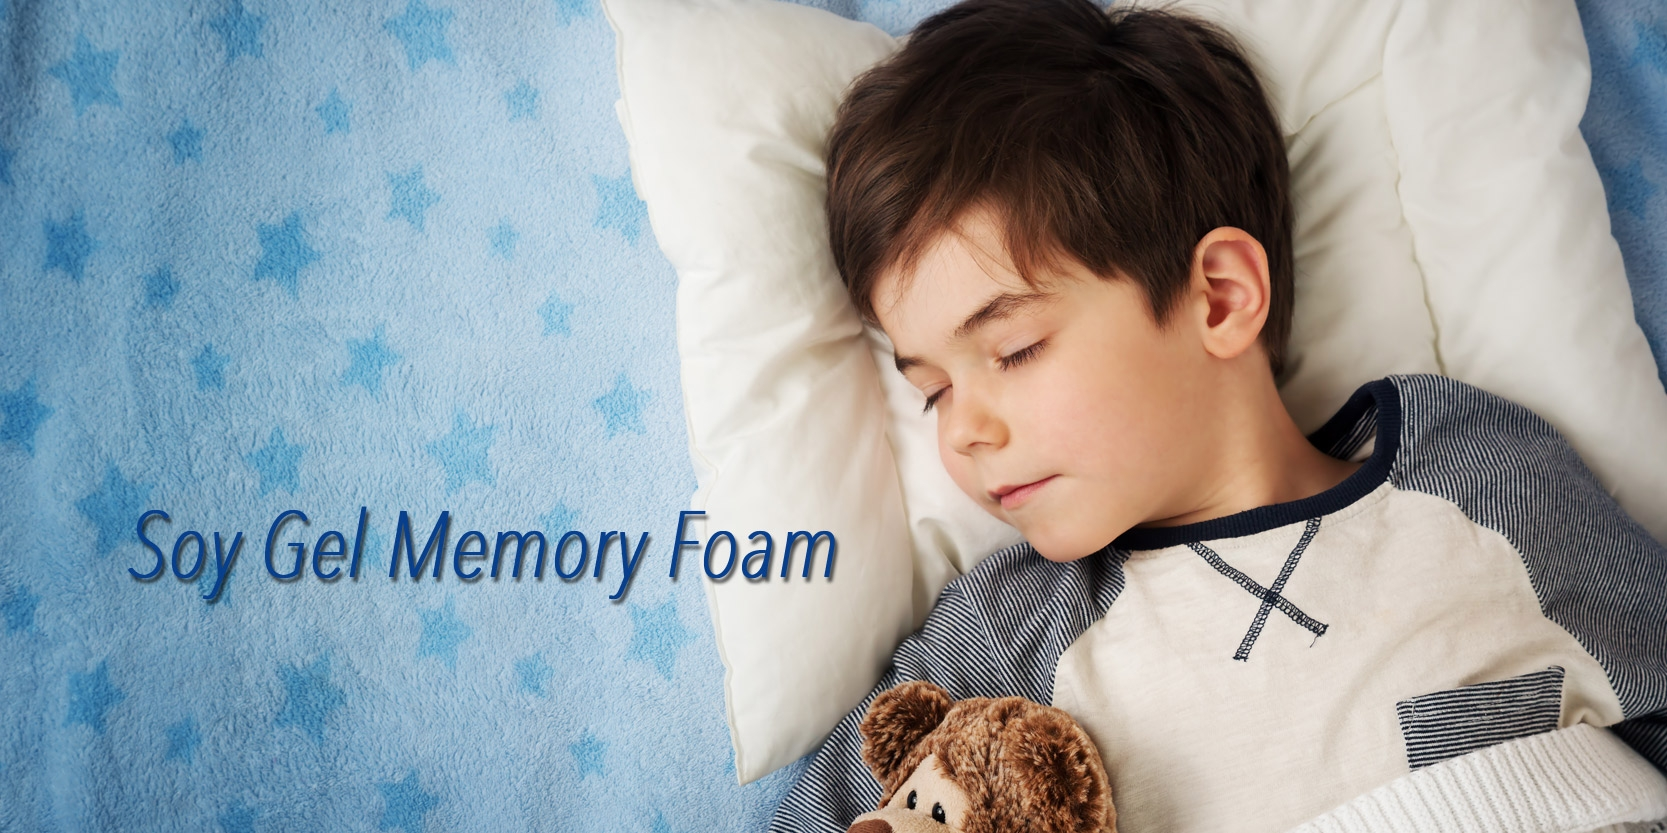 Plant Based Soy Memory Foam Compared To Standard Memory Foam Mattresses